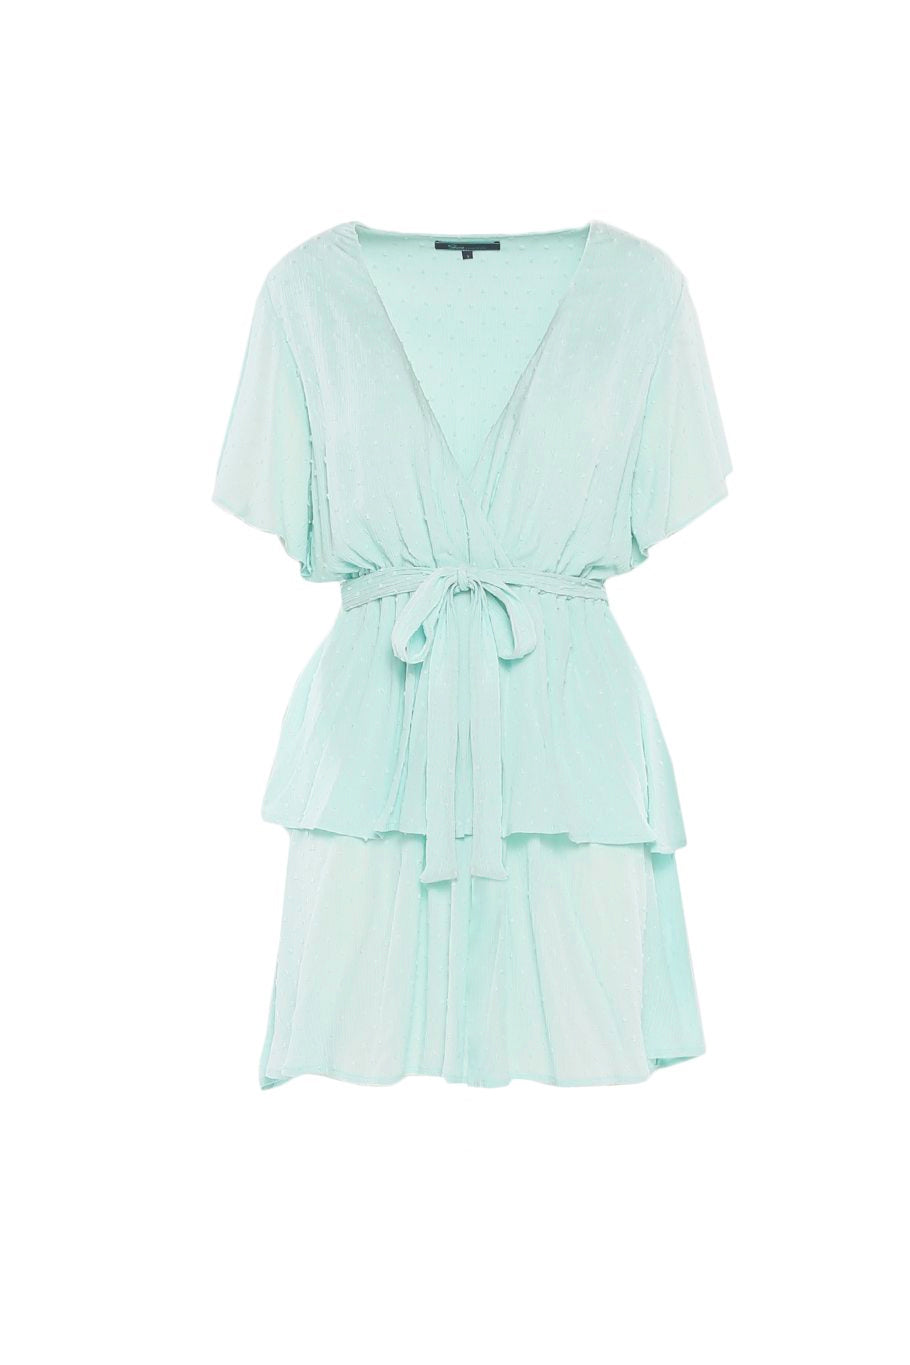 Savannah Ruffle Dress - Dew - Shore